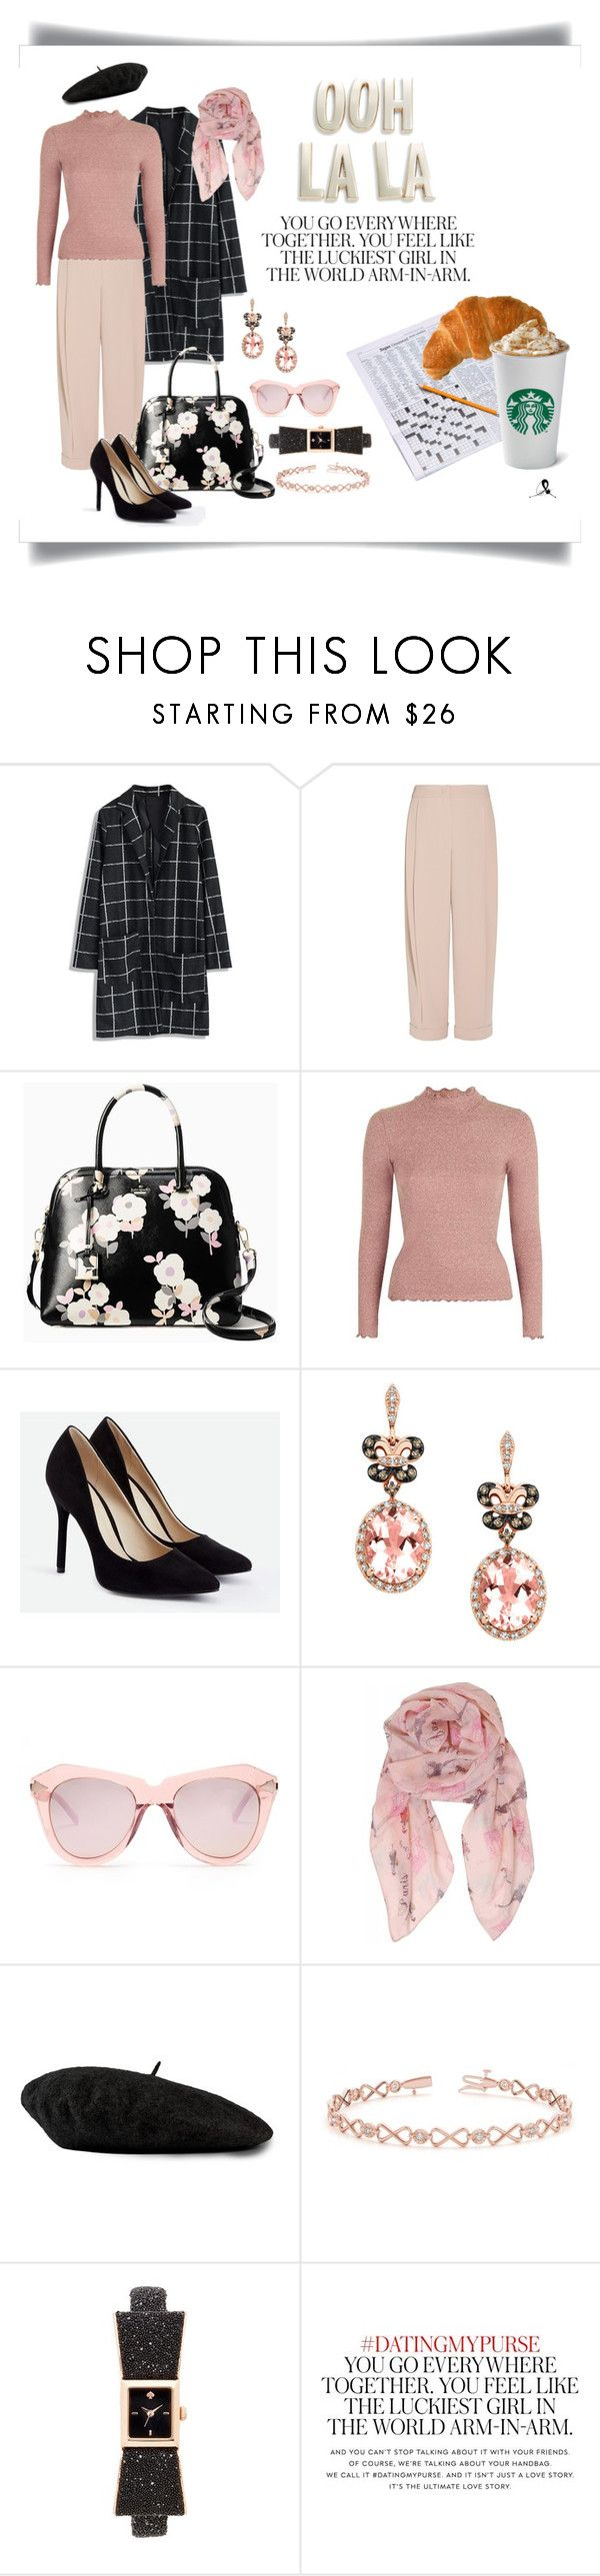 """""""cafe delight"""" by quicherz on Polyvore featuring Chicwish, Emporio Armani, Kate Spade, Topshop, JustFab, Effy Jewelry, Karen Walker, Humble Chic, Gucci and Allurez"""